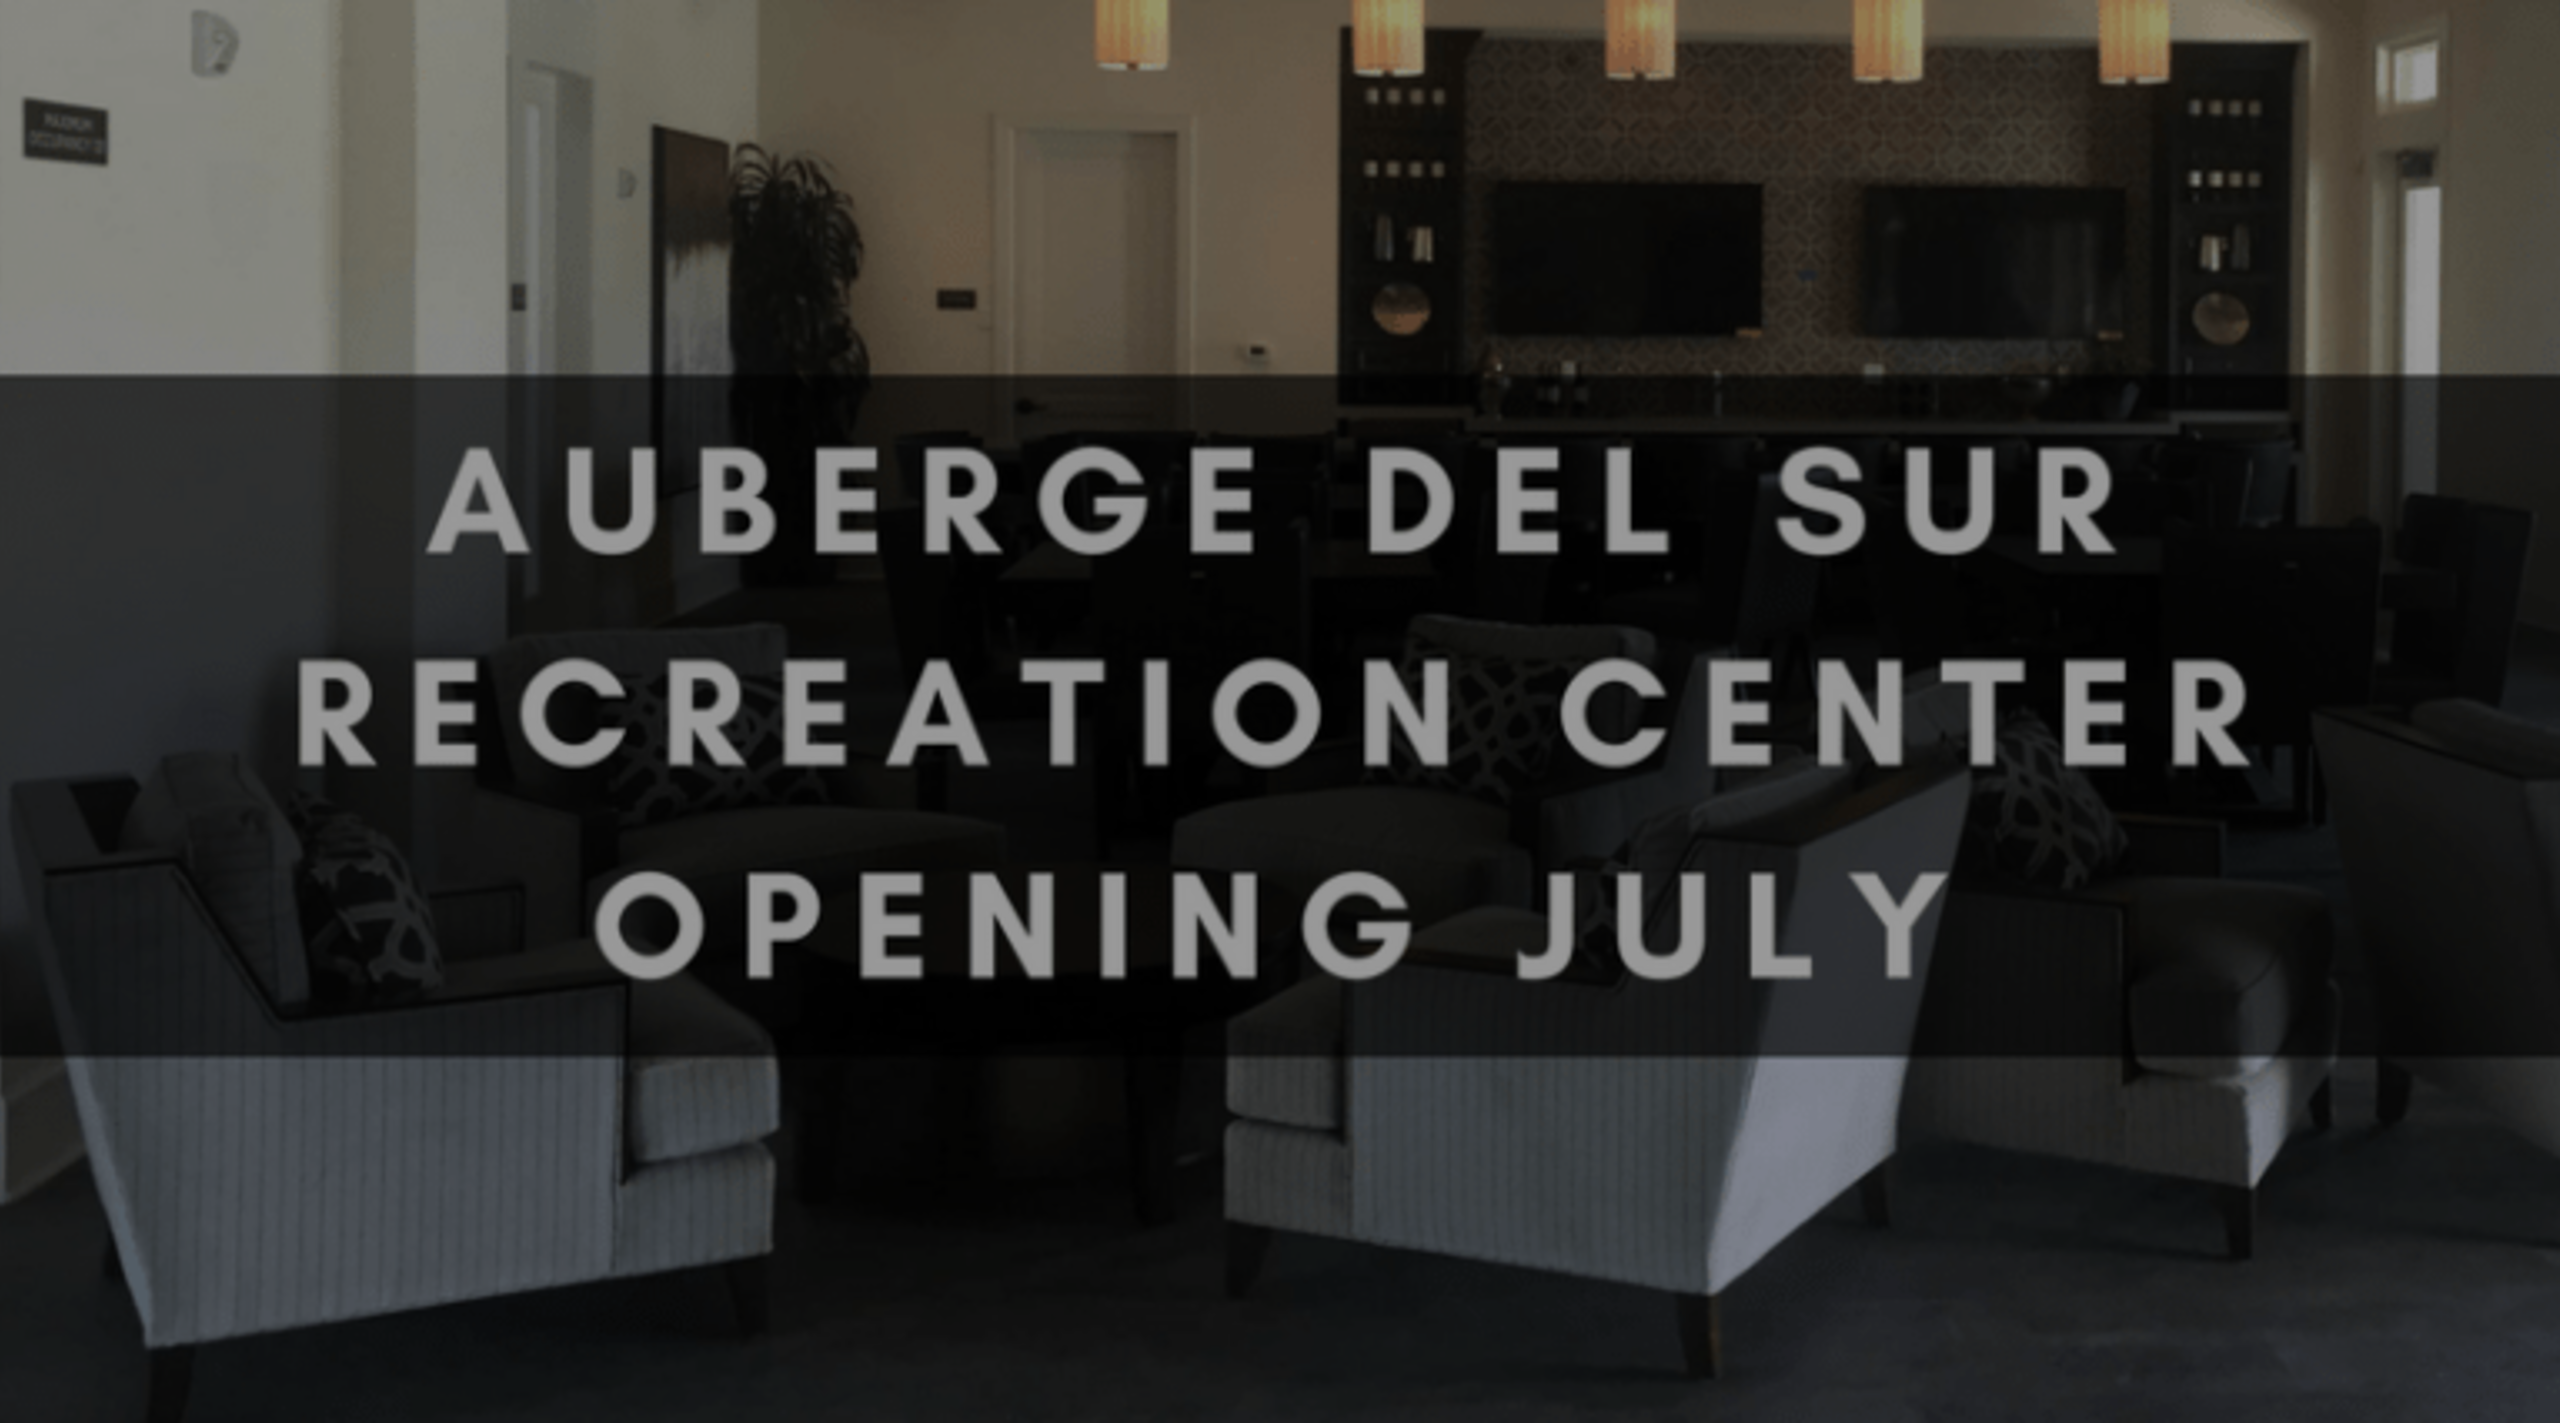 AUBERGE DEL SUR | RECREATION CENTER OPENING JULY